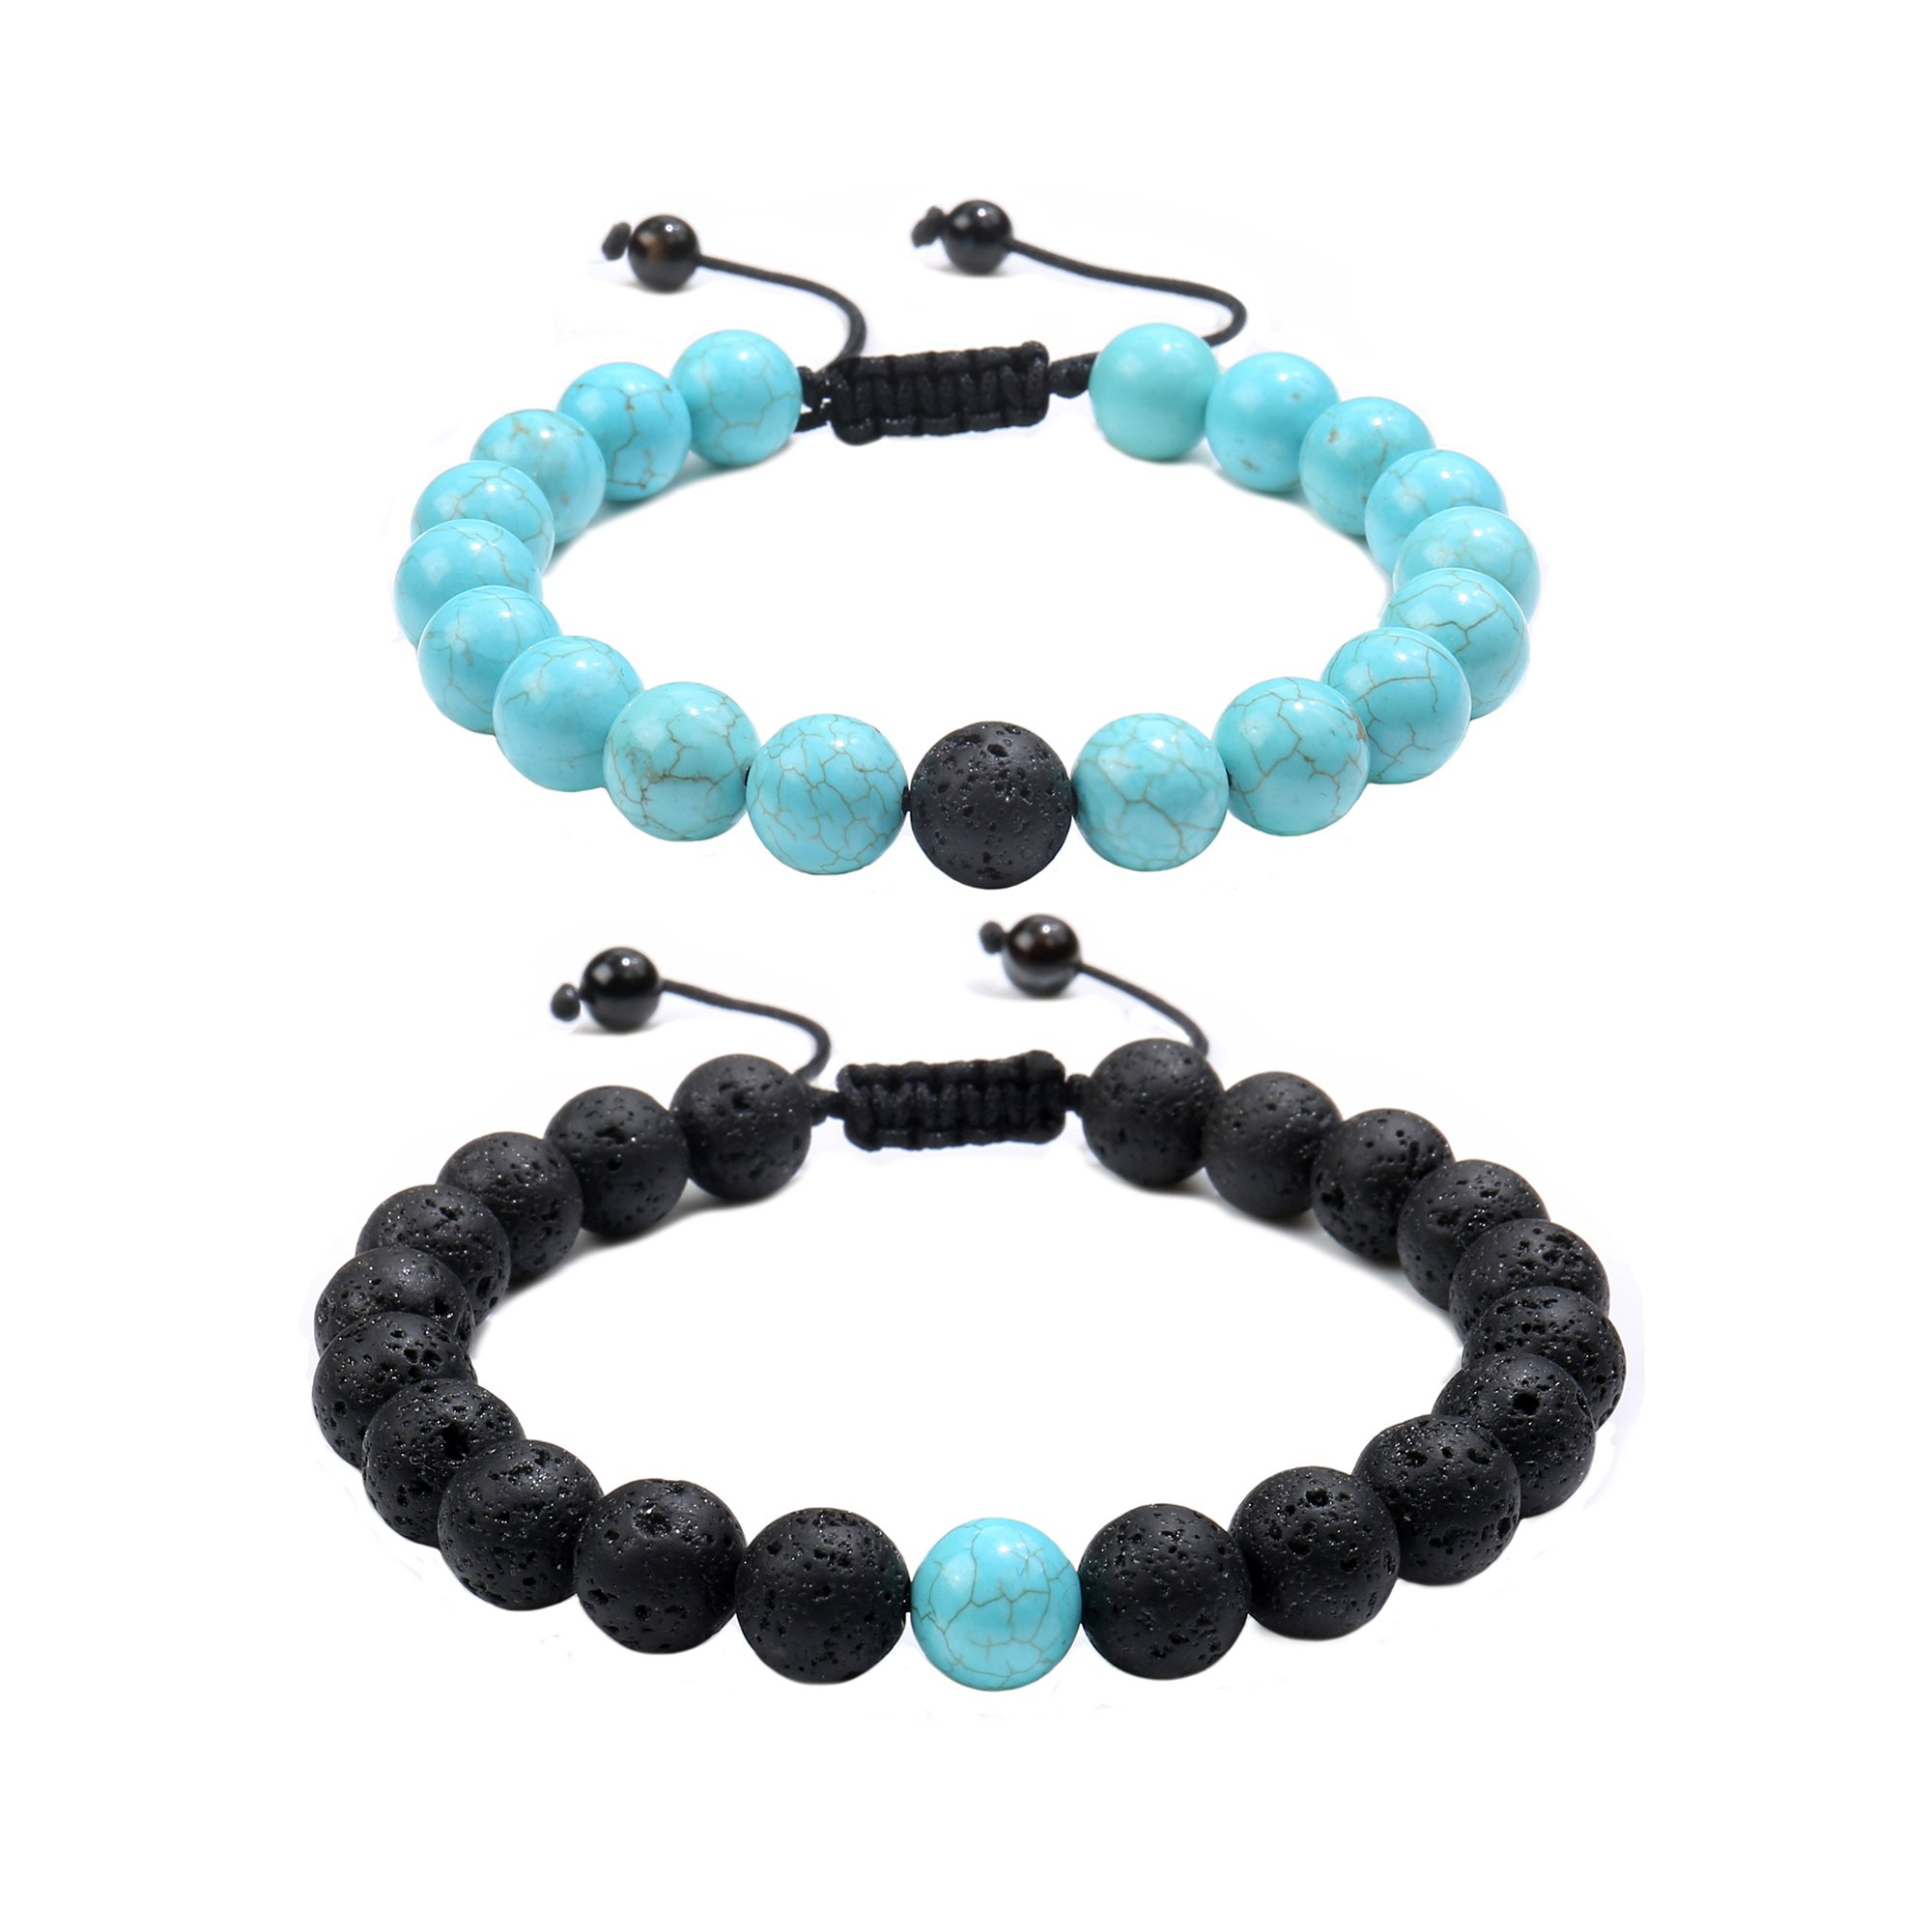 Jade cabbage Distance Relationship Beads Bracelet Couple Set Jewelry (Black Lava & Turquoise Braided)